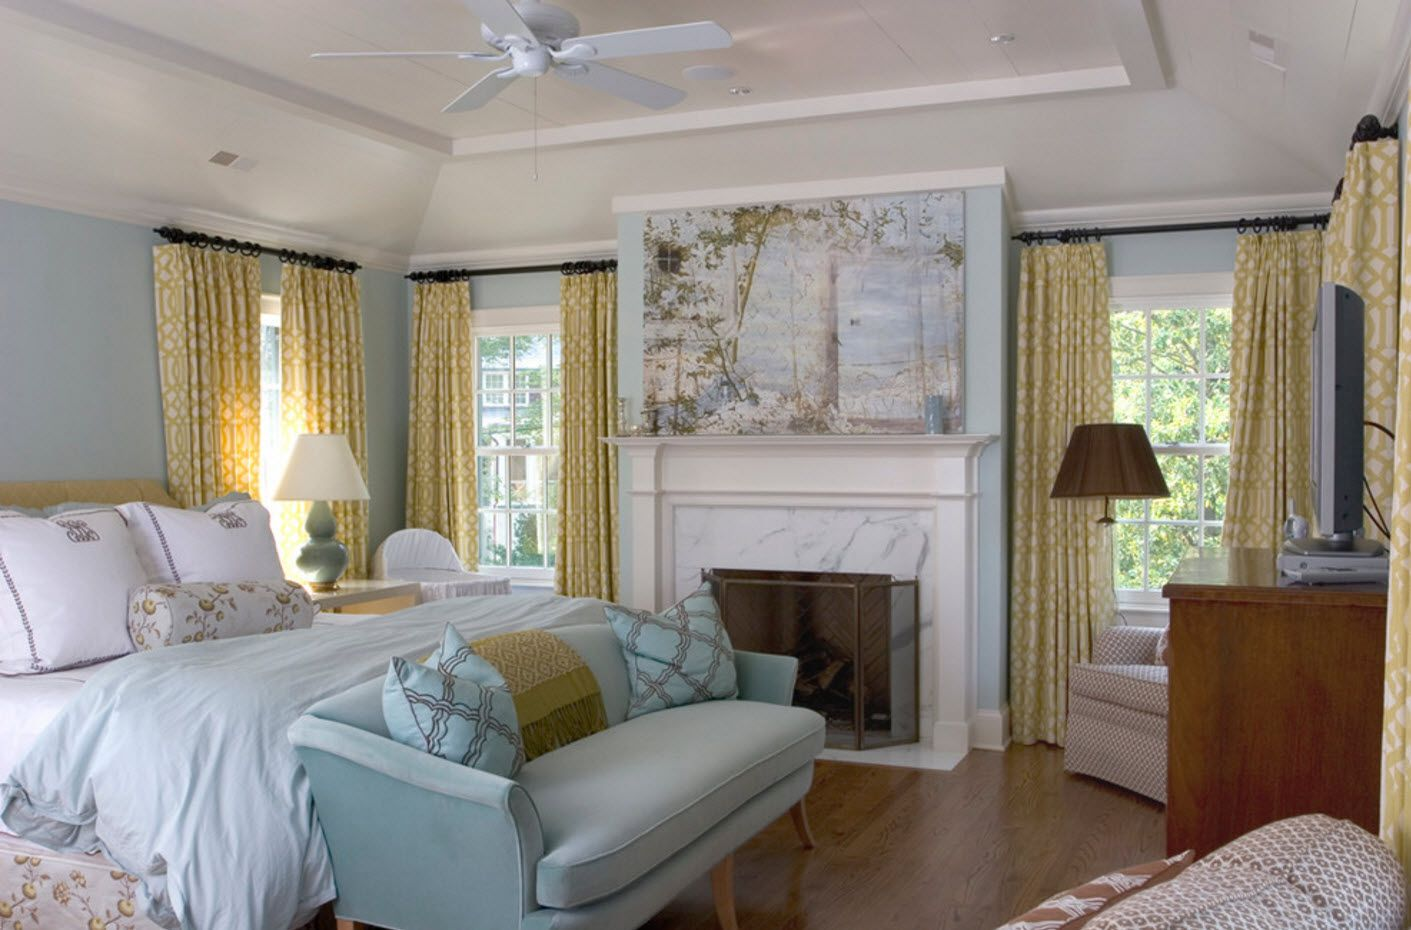 Yellow drapes as an accent in the classic styled light blue colored living room with the hearth